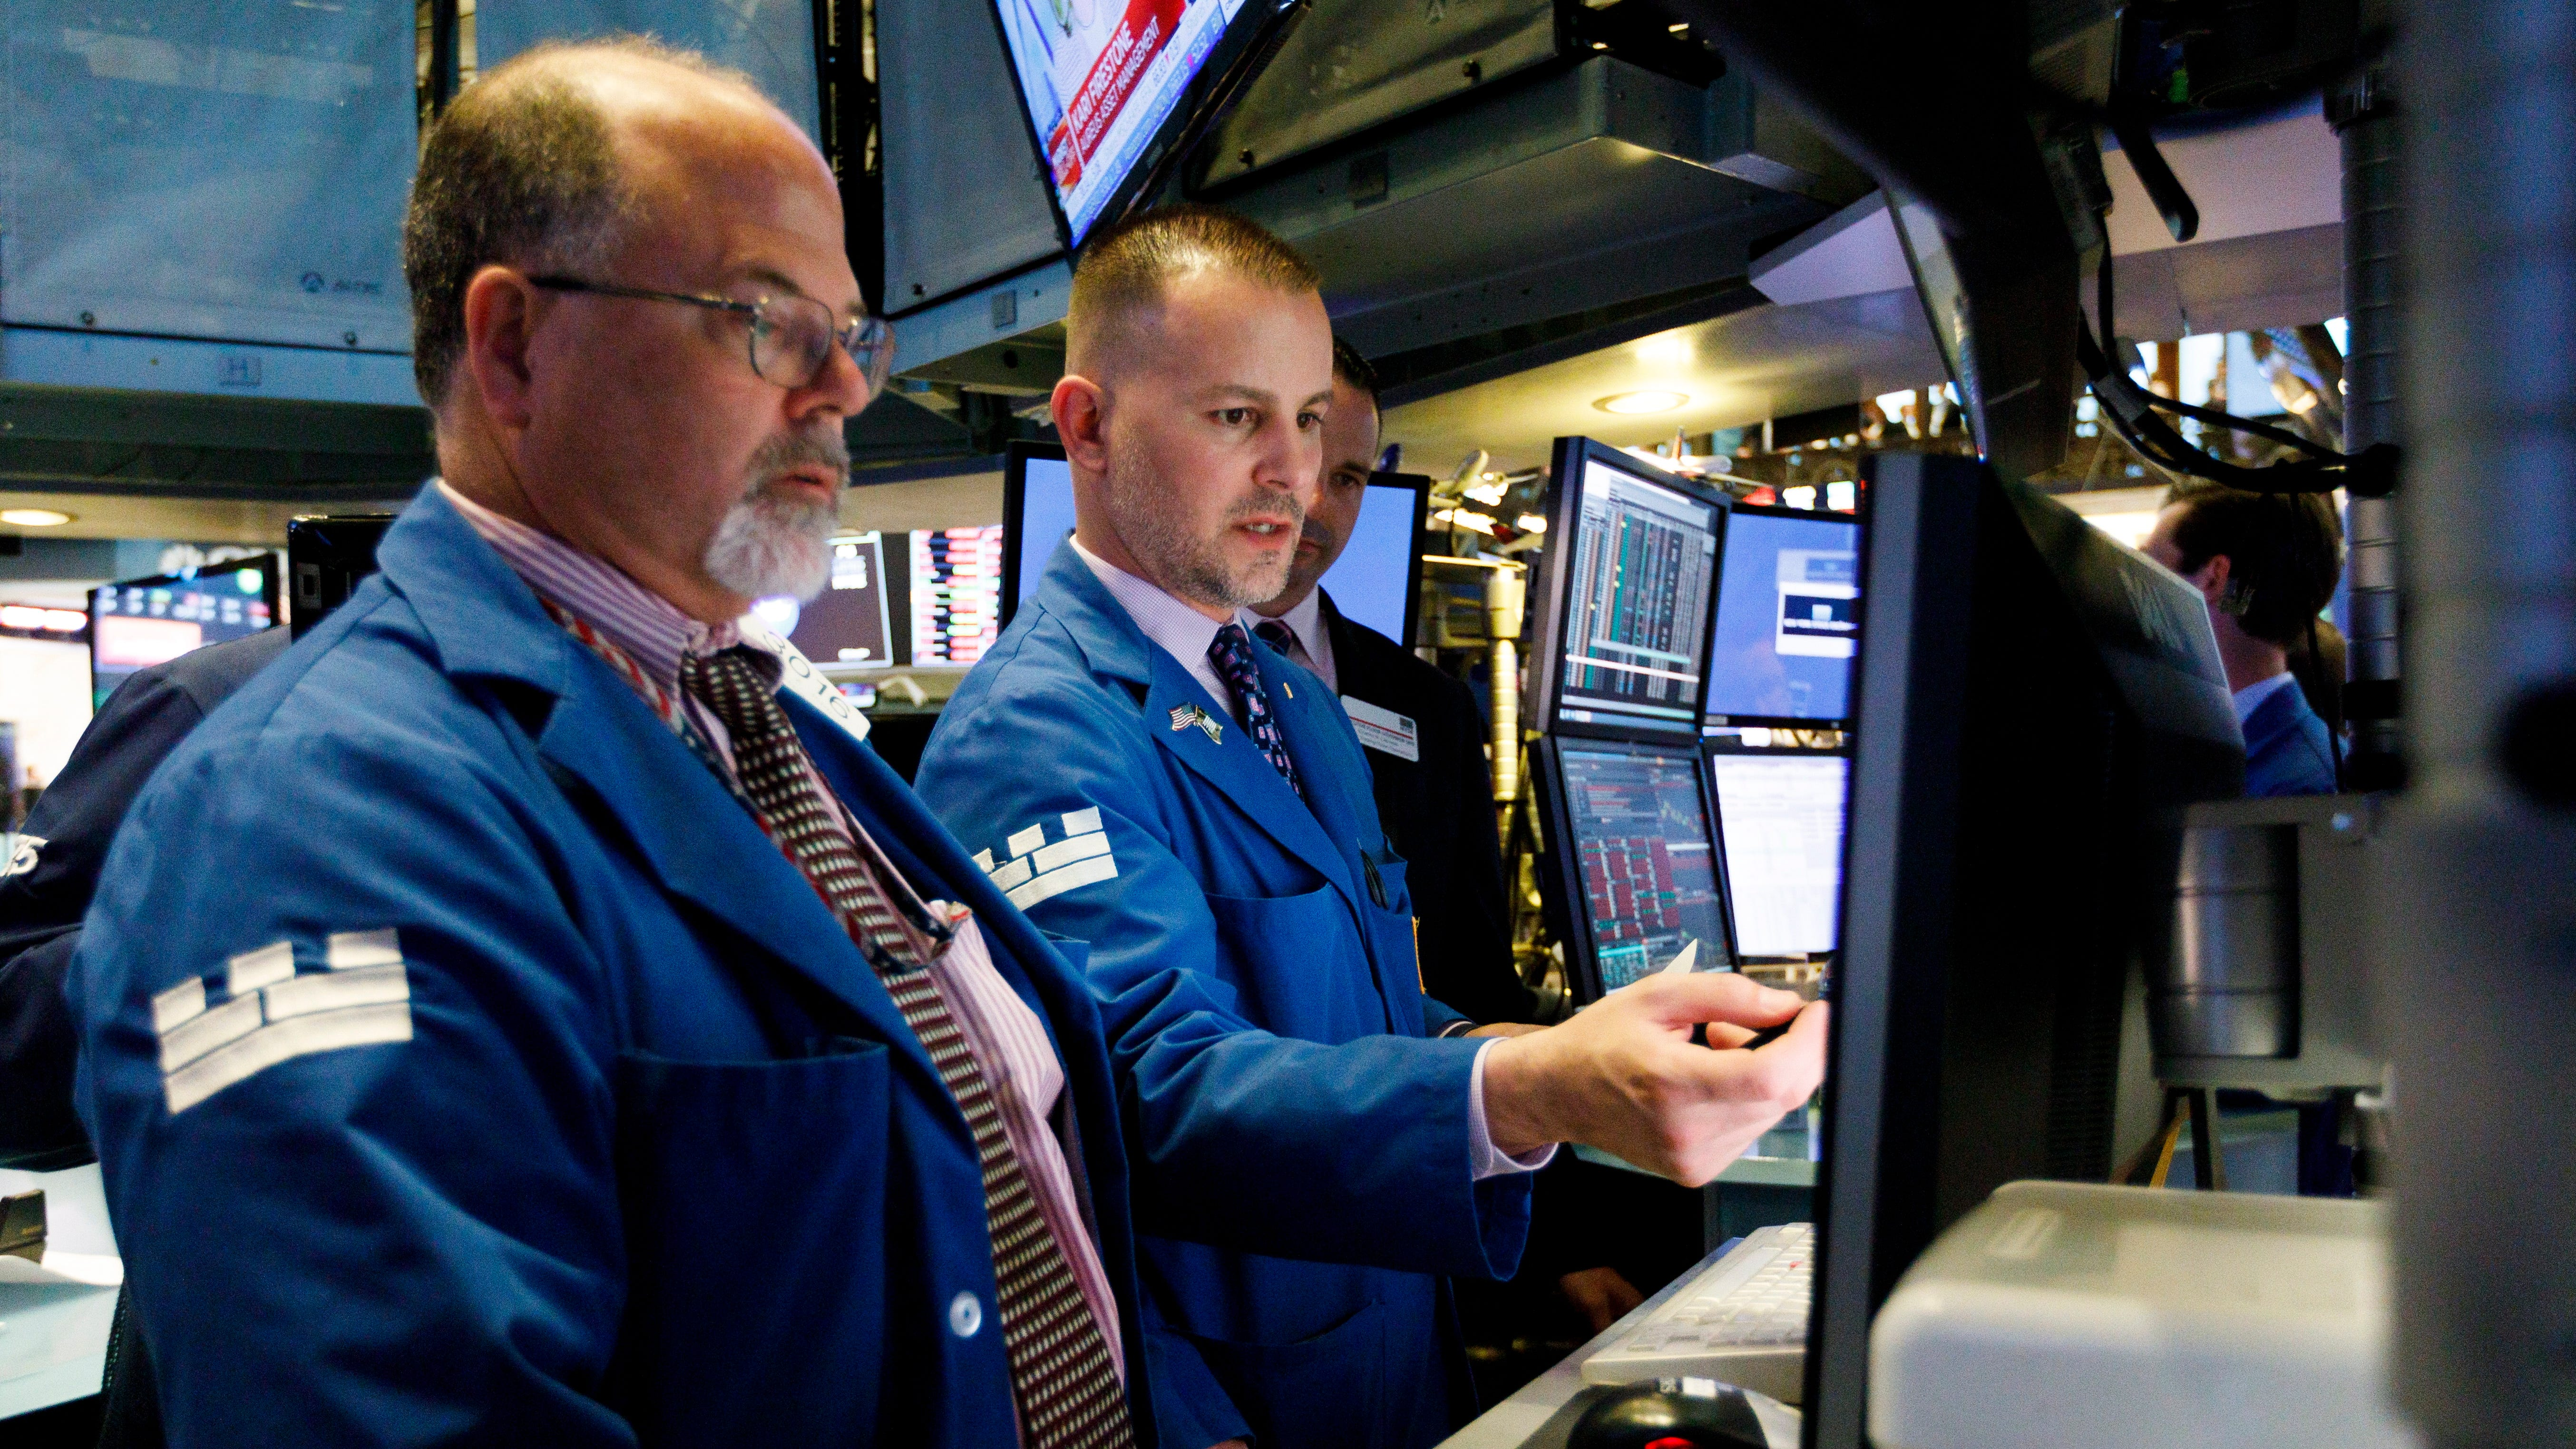 epa06840366 Traders work on the floor of the New York Stock Exchange in New York, New York, USA, on 25 June 2018. The Dow Jones industrials closed the day down over 300 points.  EPA-EFE/JUSTIN LANE ORG XMIT: JLX16